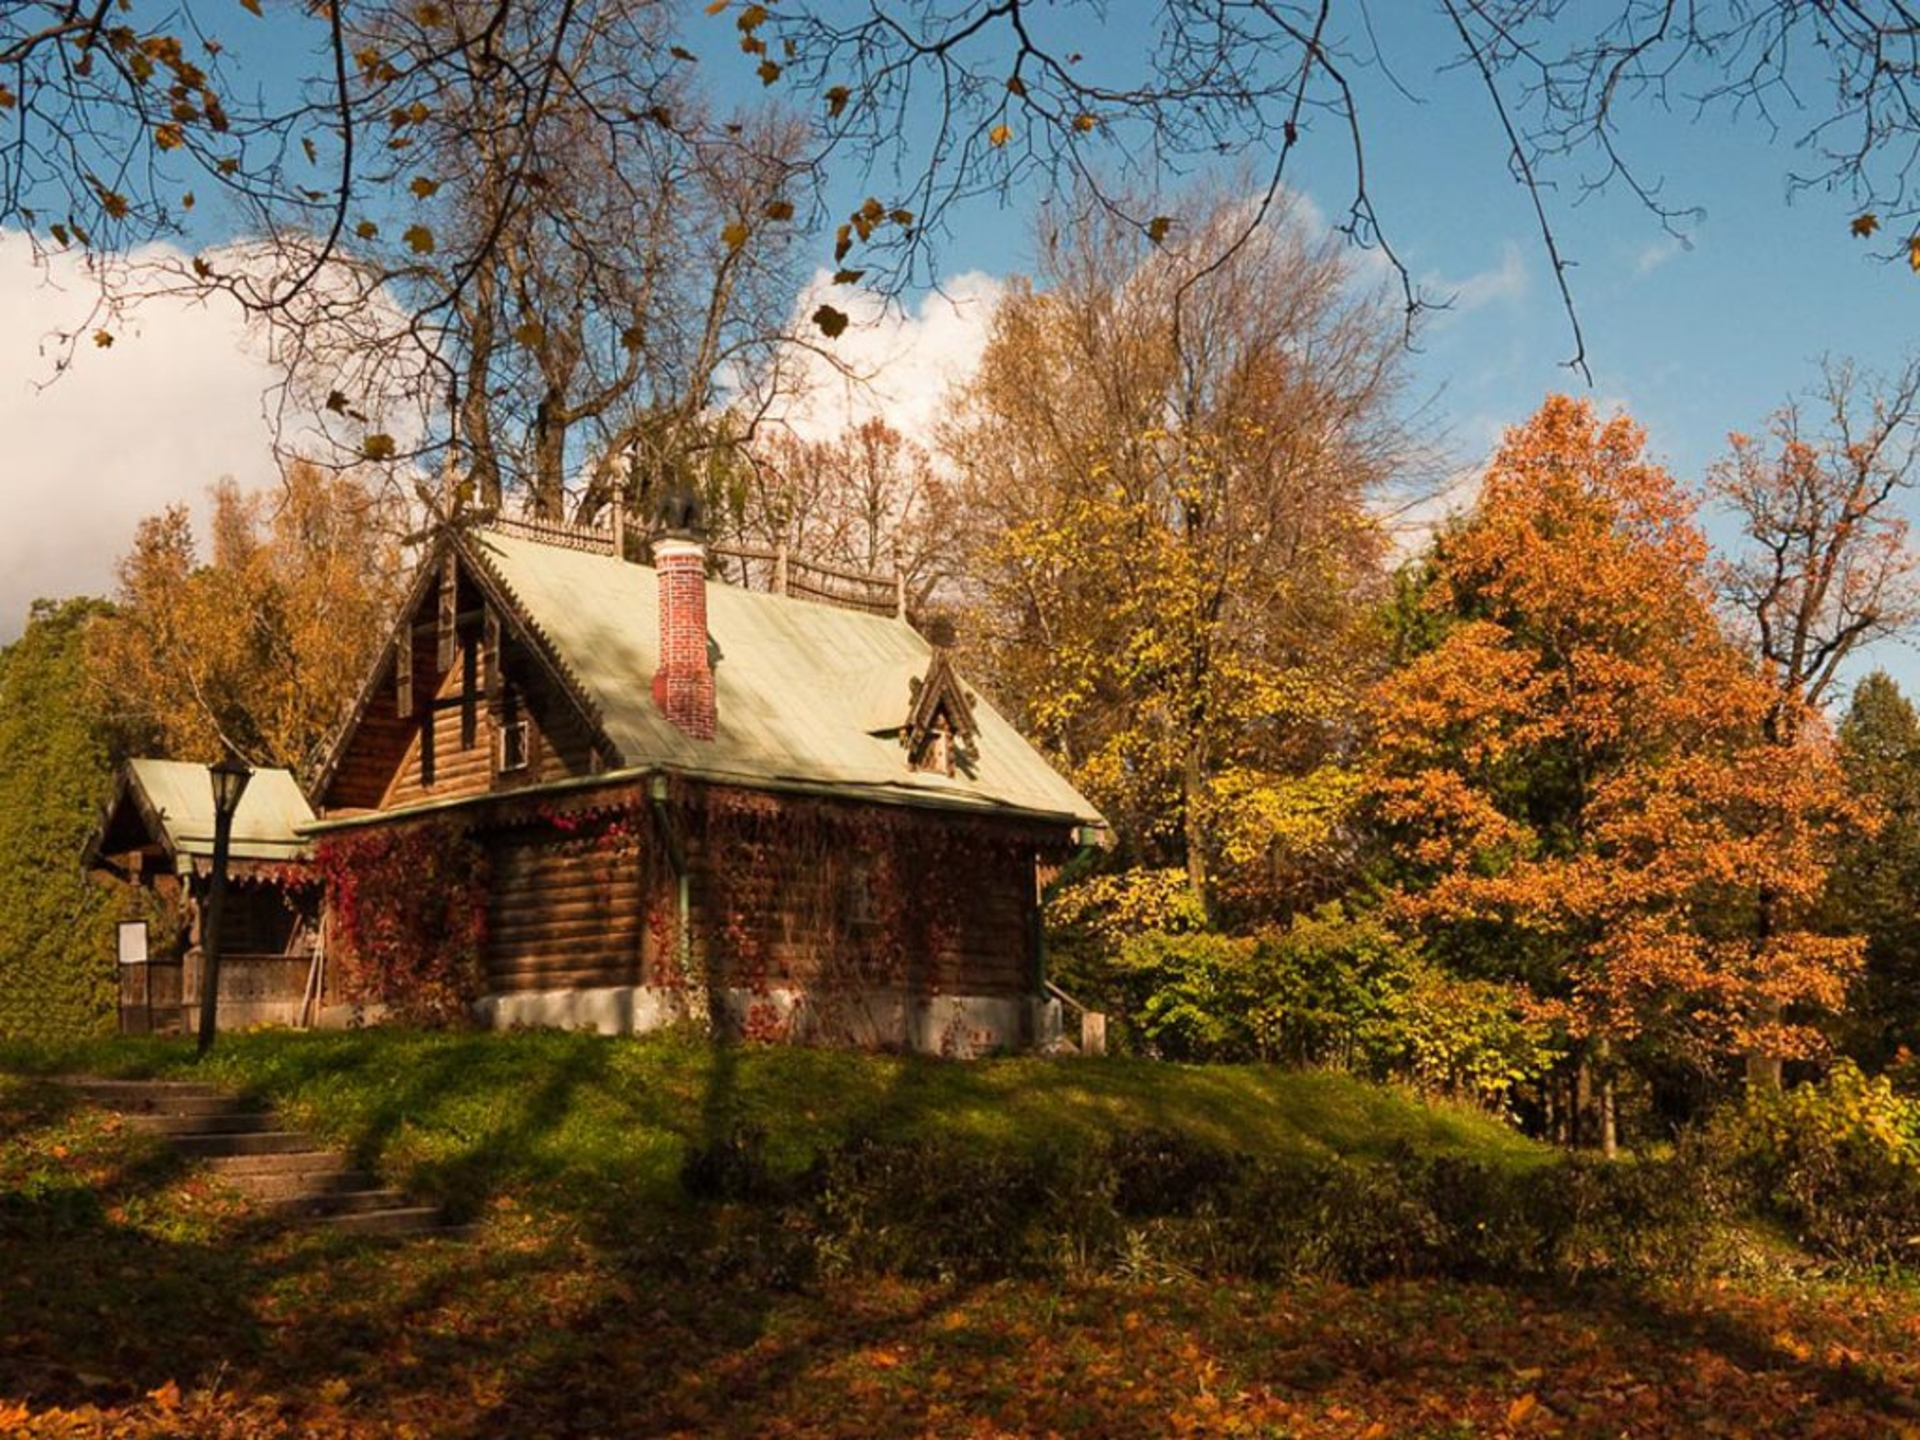 pixel Desktop Wallpapers Beautiful Autumn Cabin Wallpaper Yvt 1920x1440